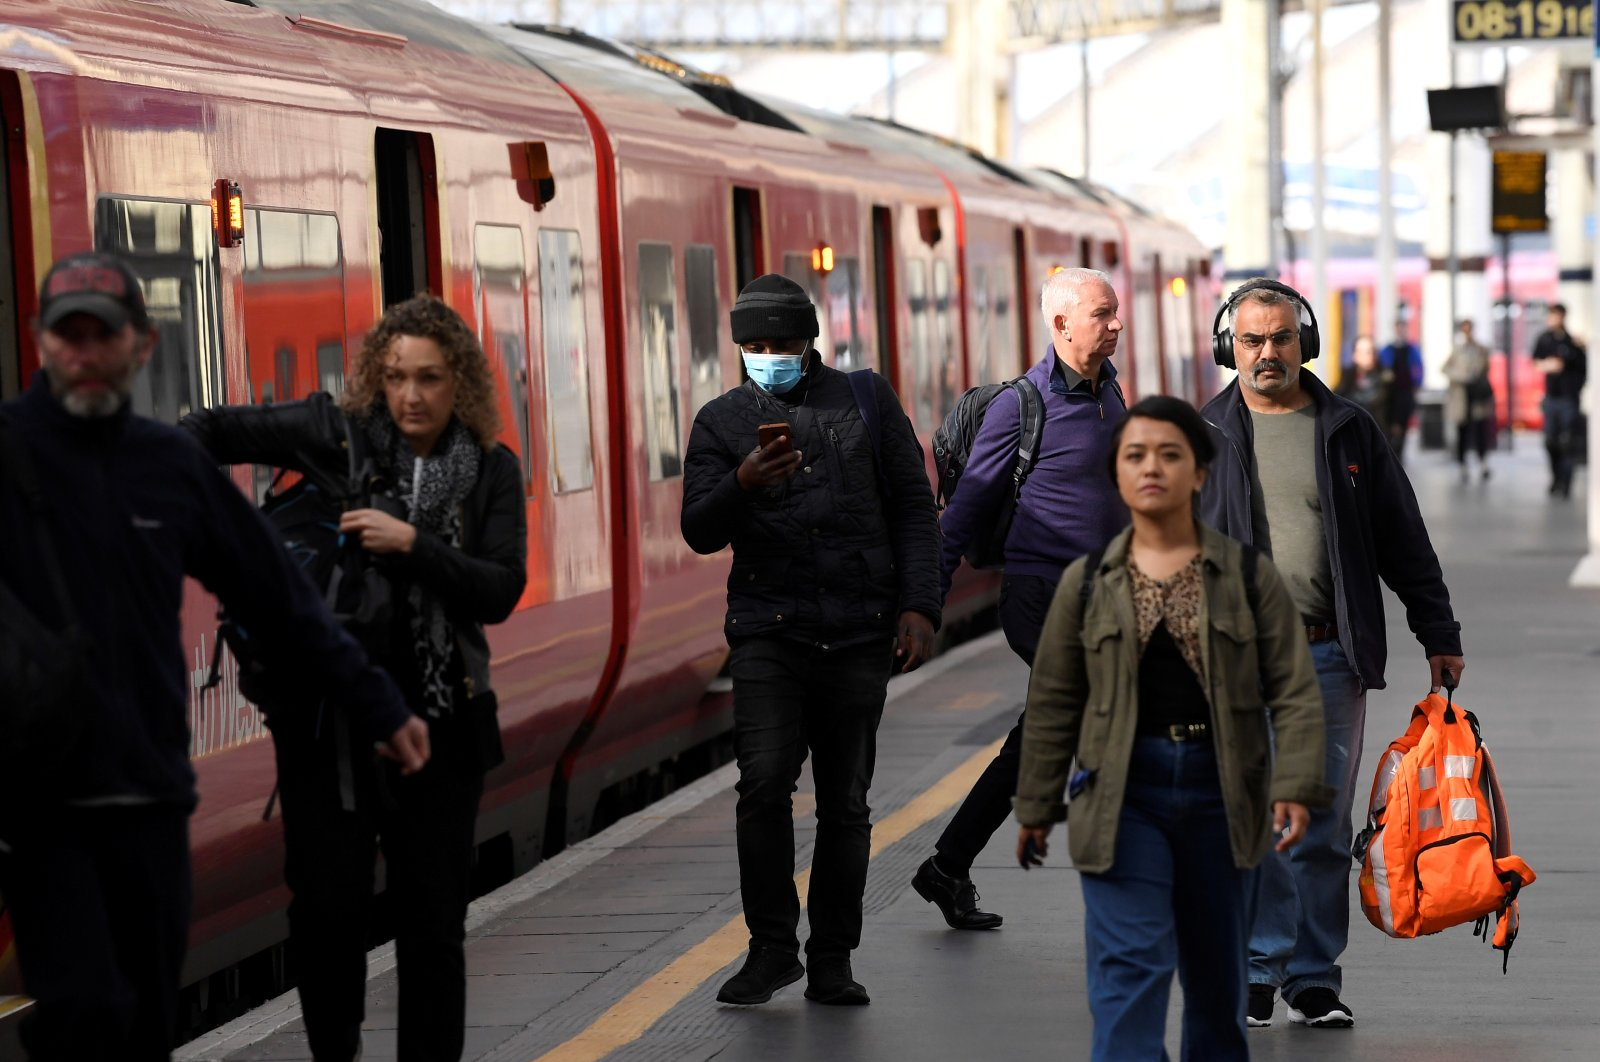 Commuters are seen in Waterloo station during the morning rush hour following the outbreak of the coronavirus disease (COVID-19), London, Britain, May 19, 2020. (Reuters Photo)